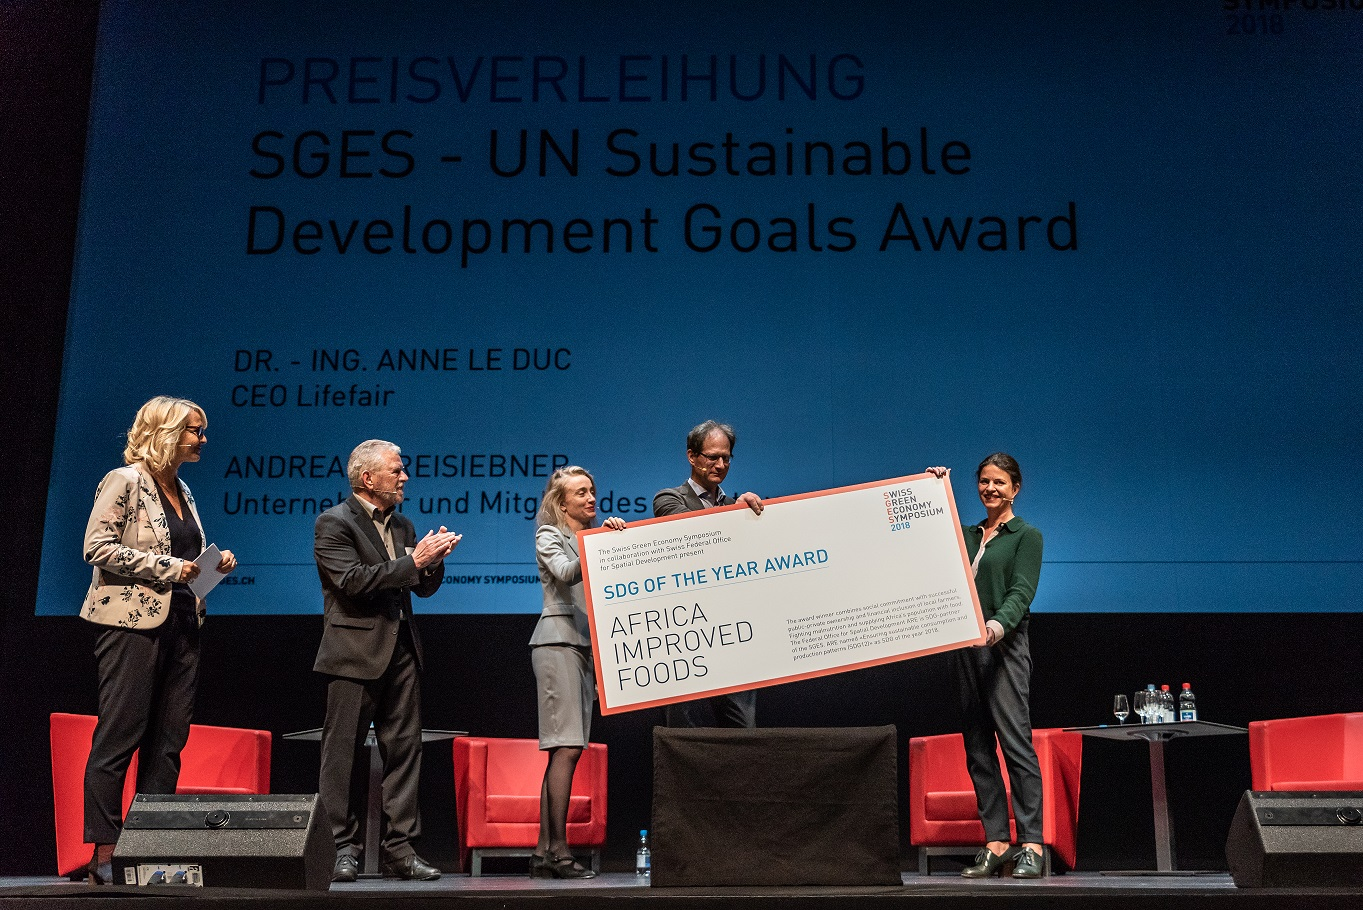 Africa Improved Foods receives first SDG Award for sustainable consumption